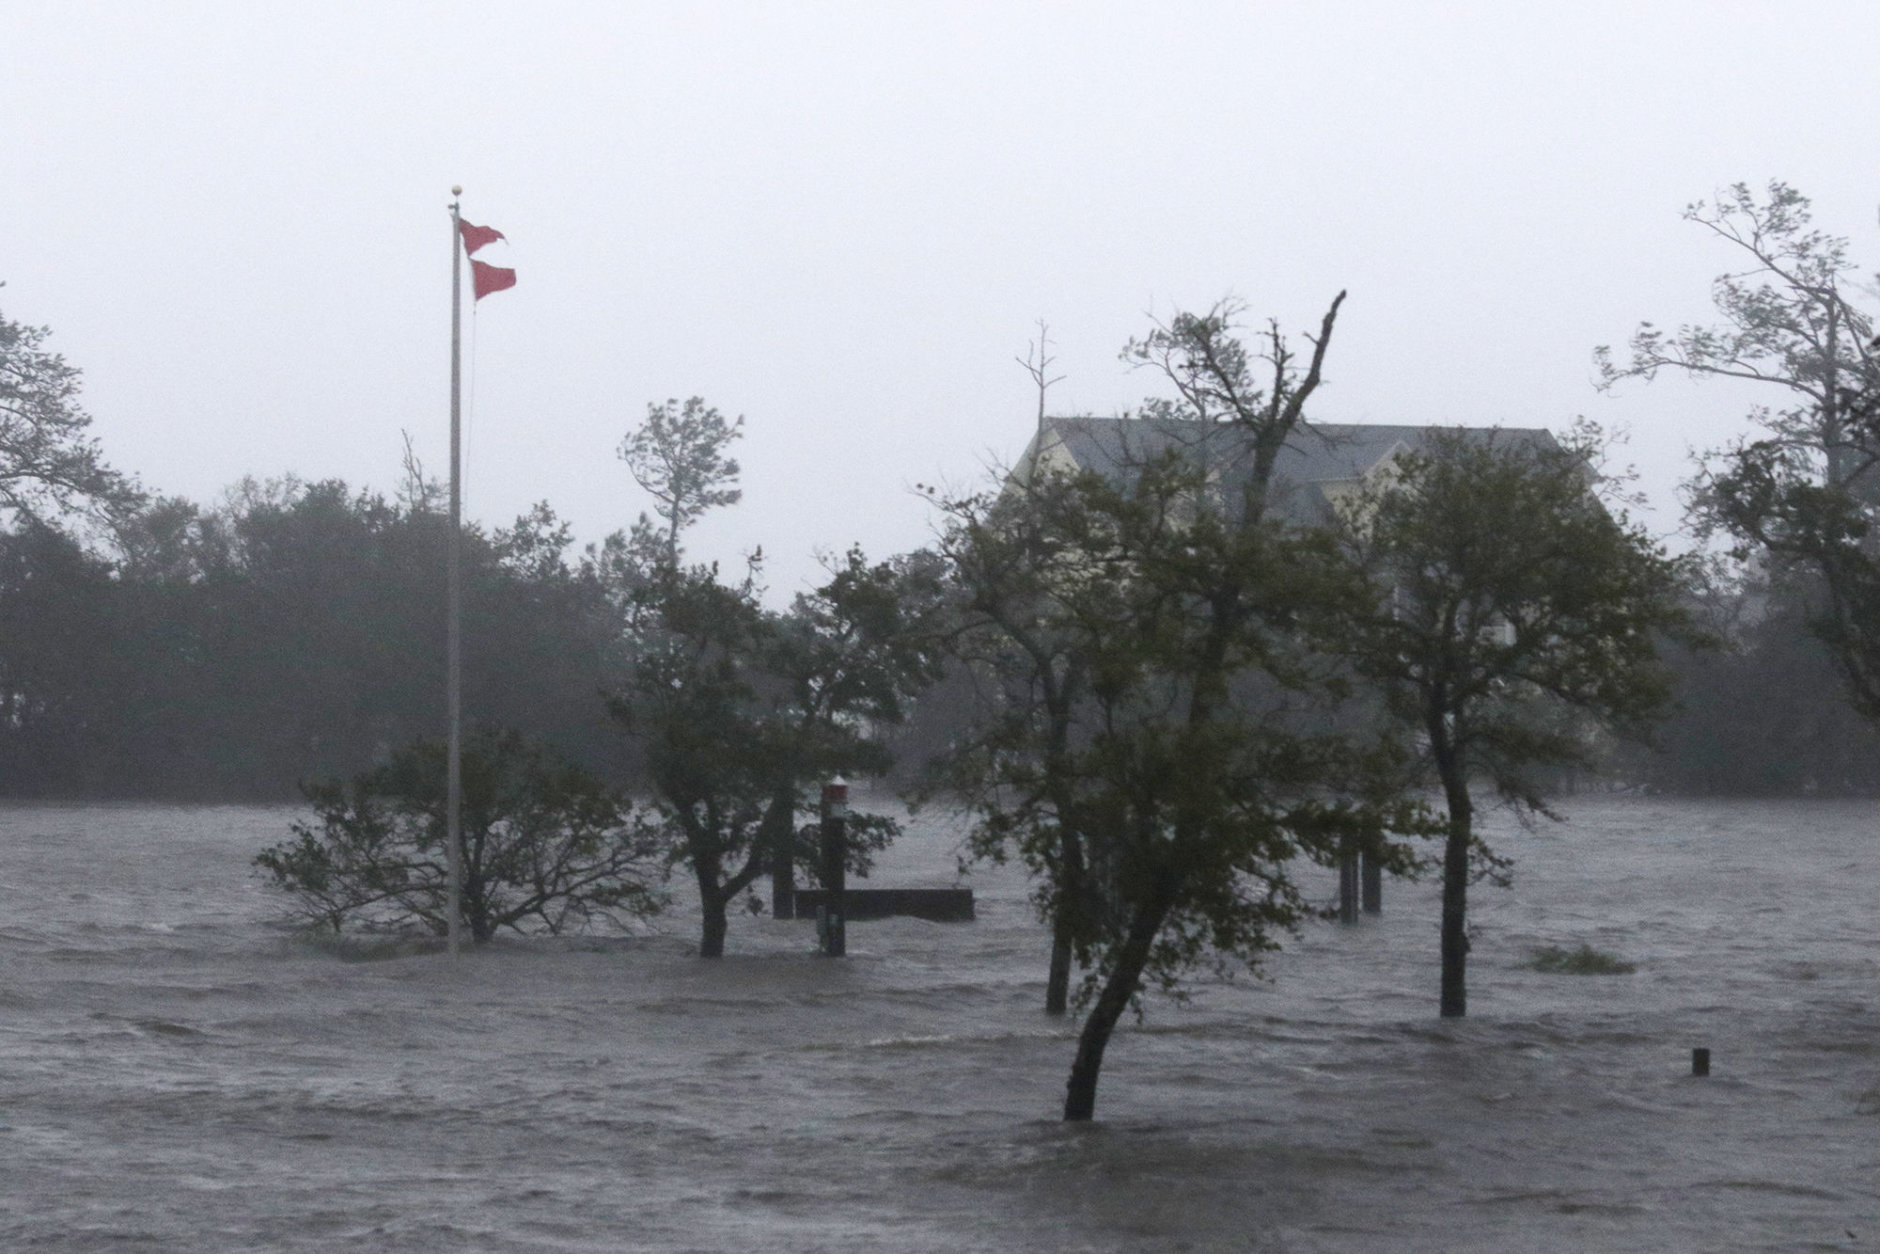 High winds and storm surge from Hurricane Florence hits Swansboro N.C.,Friday, Sept. 14, 2018. (AP Photo/Tom Copeland)